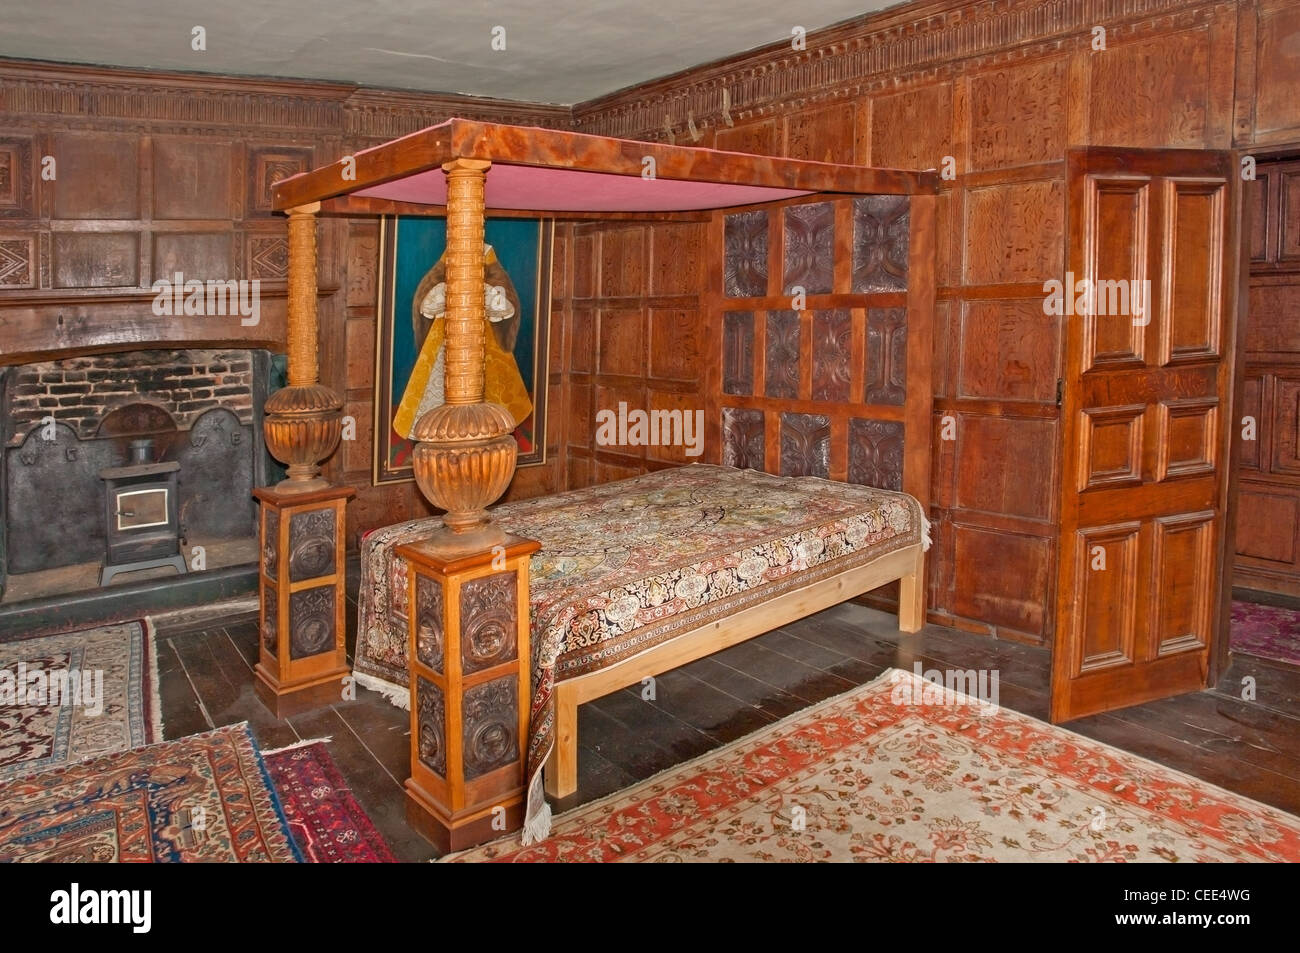 himmelbett bett in castle lodge ludlow shropshire eine mittelalterliche tudor. Black Bedroom Furniture Sets. Home Design Ideas